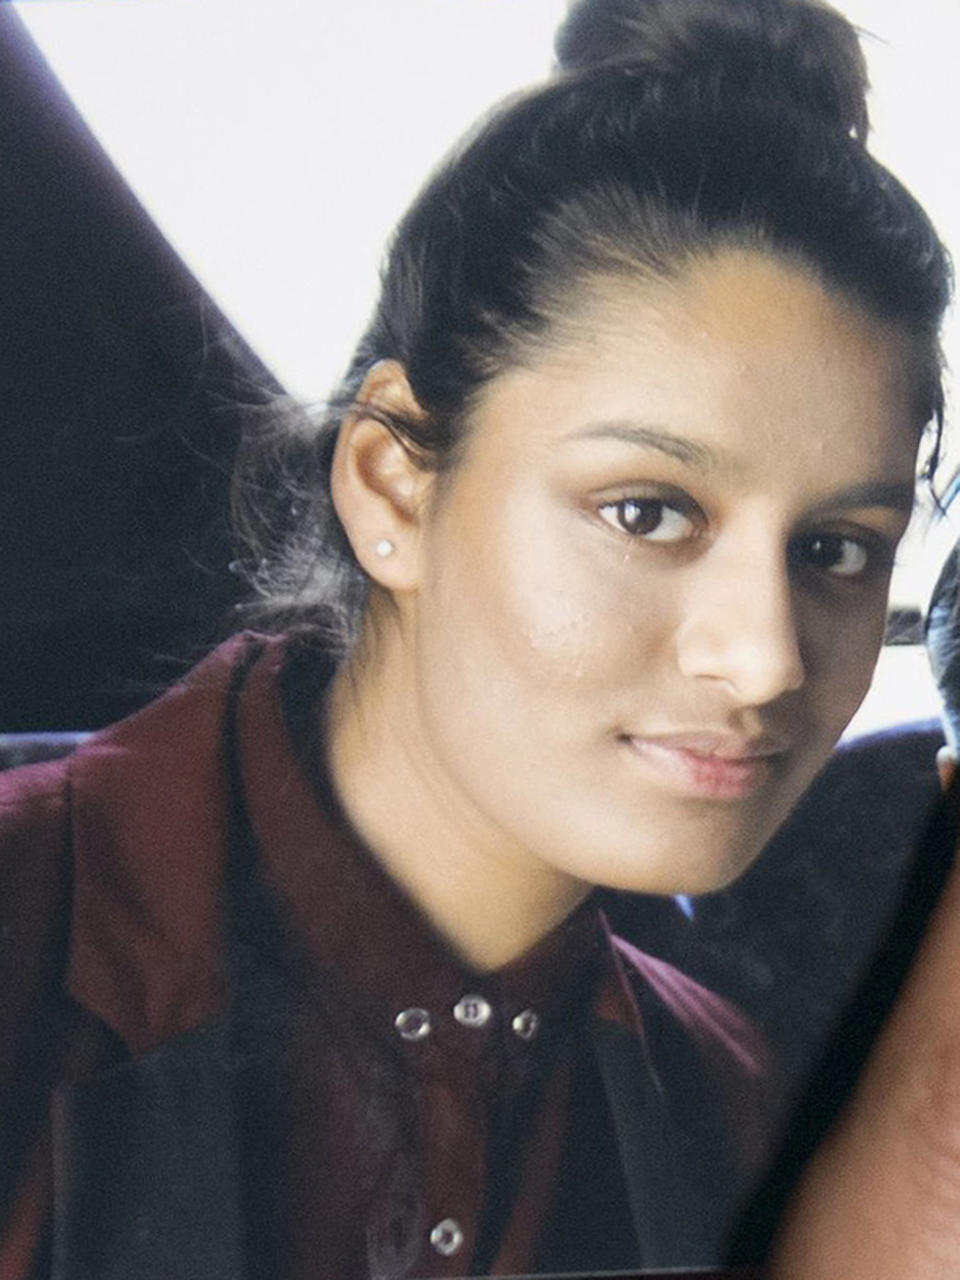 Shamima Begum says she regrets speaking to the media and wishes she had found a different way to contact her family.